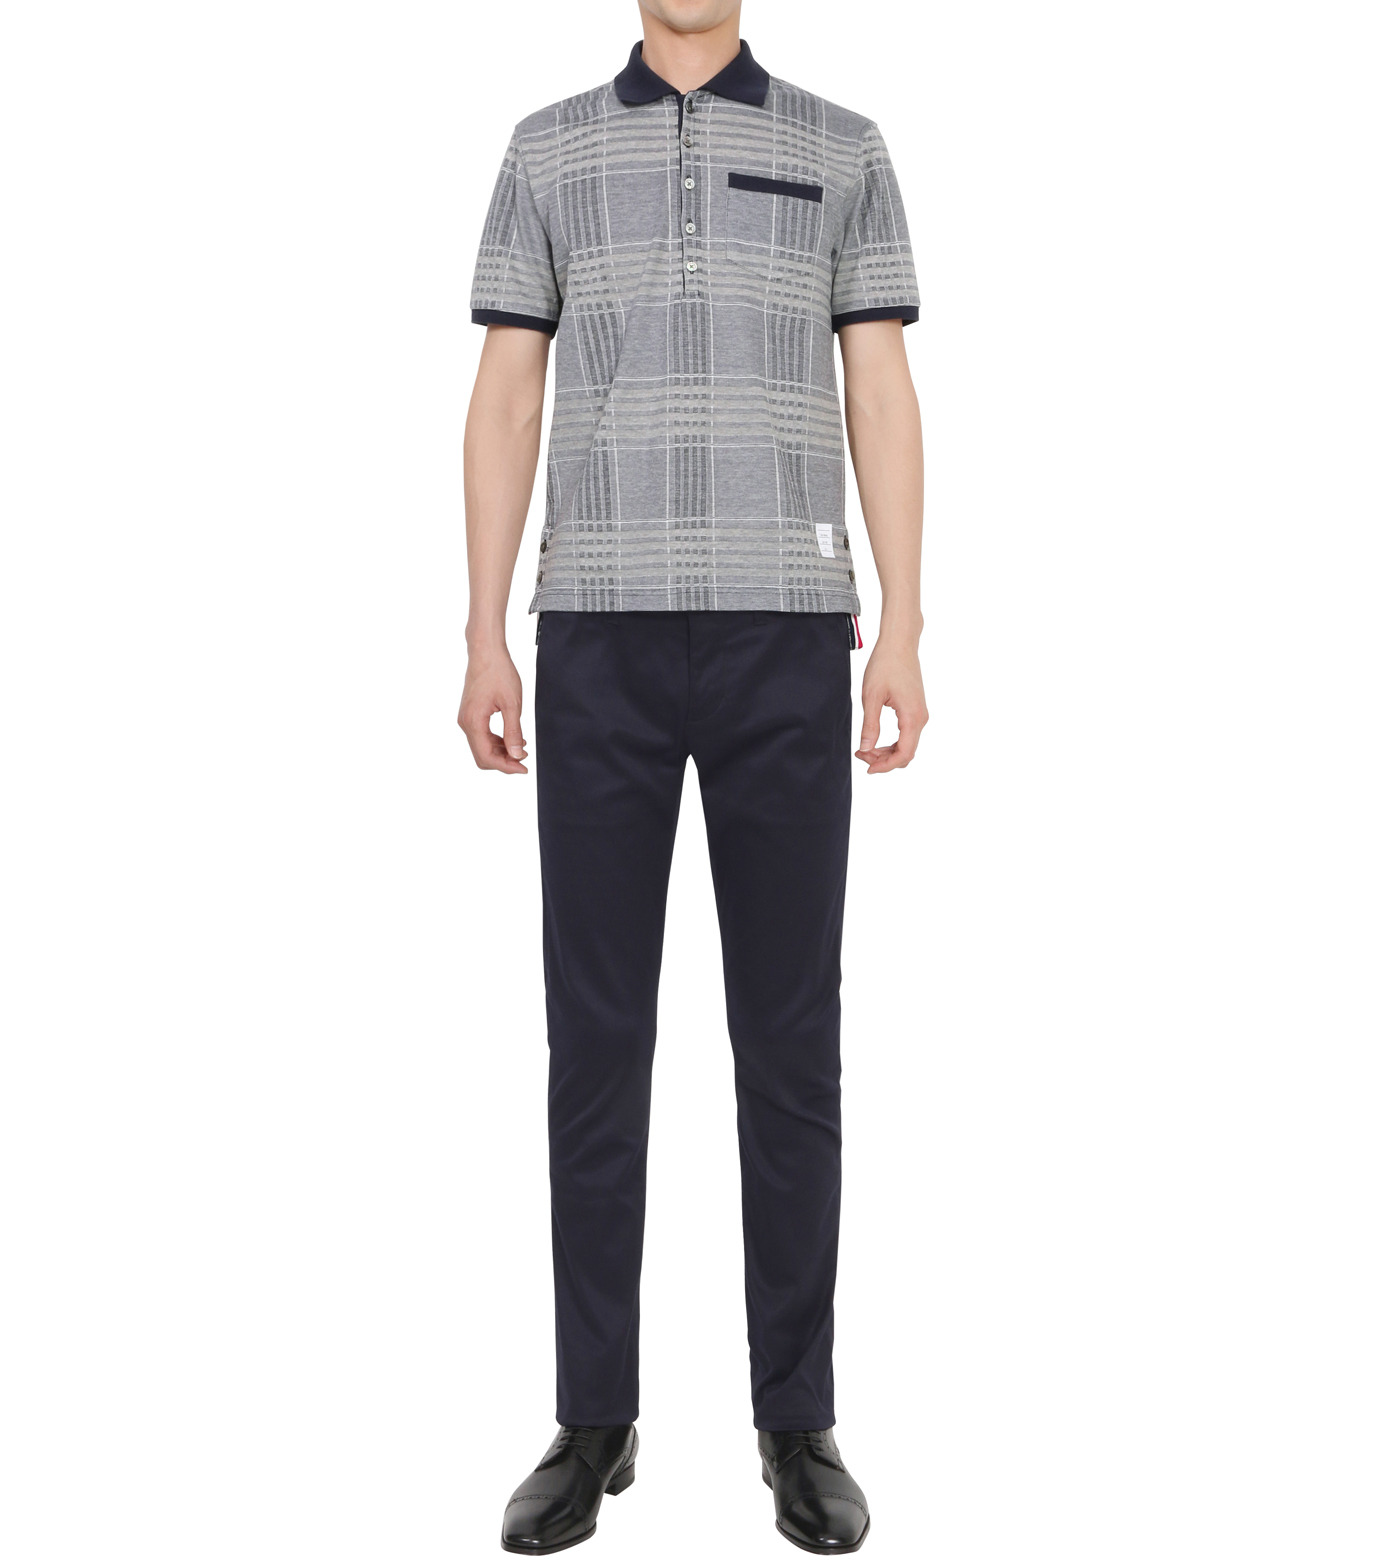 Thom Browne(トムブラウン)のCheckpolo-NAVY(カットソー/cut and sewn)-A0163C10070-93 拡大詳細画像3